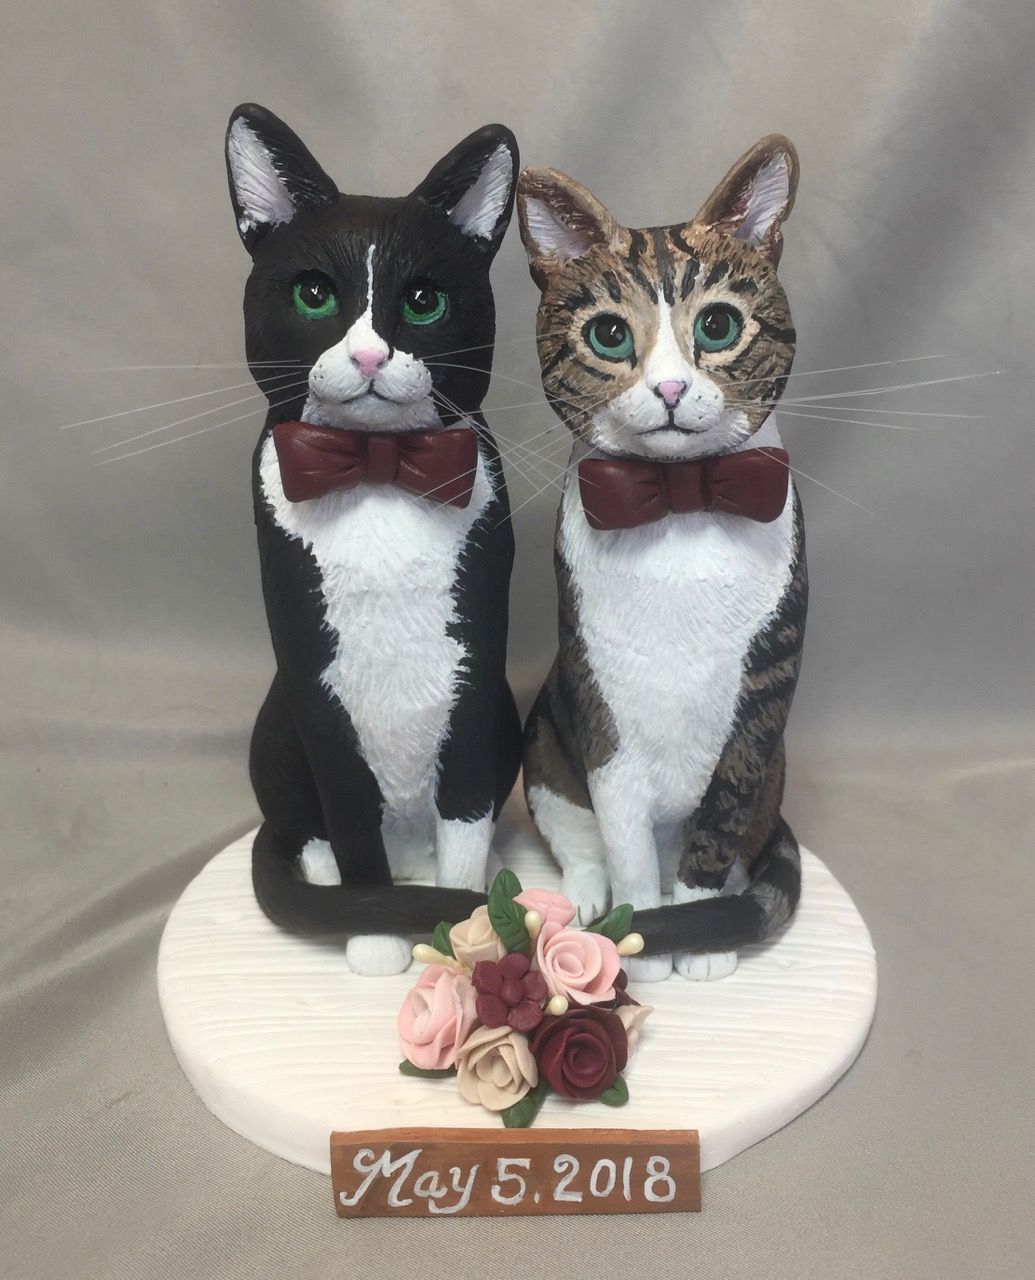 Tabby and Tuxedo cat wedding cake topper. Hand sculpted